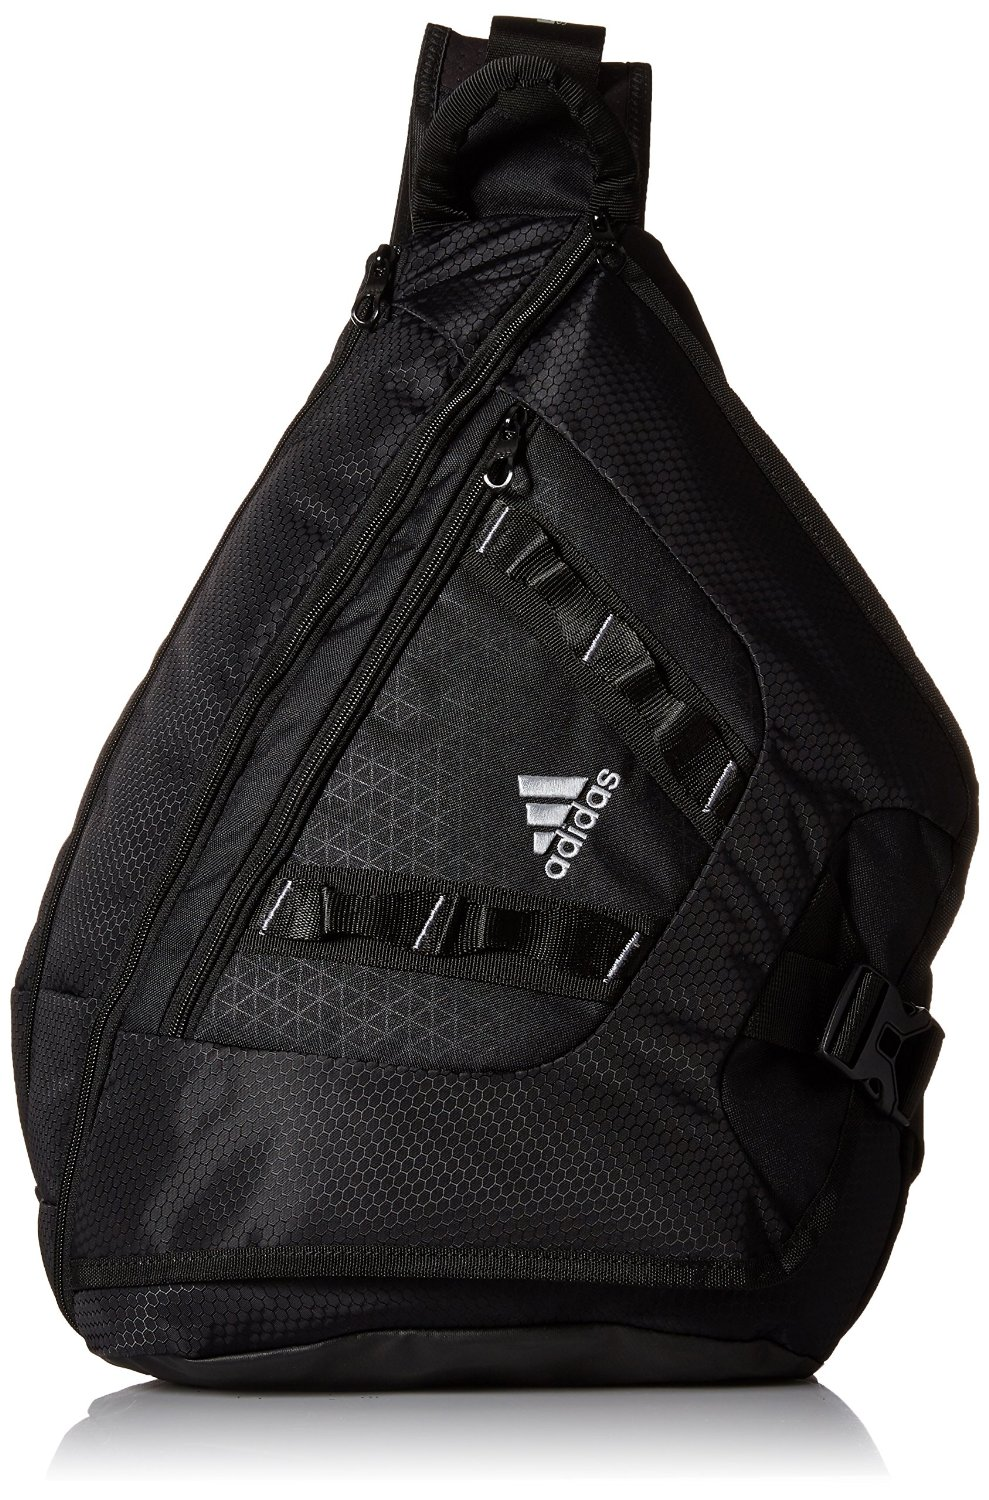 Babolat Tennis Shoes >> adidas Capital Sling Backpack (Black) from Do It Tennis